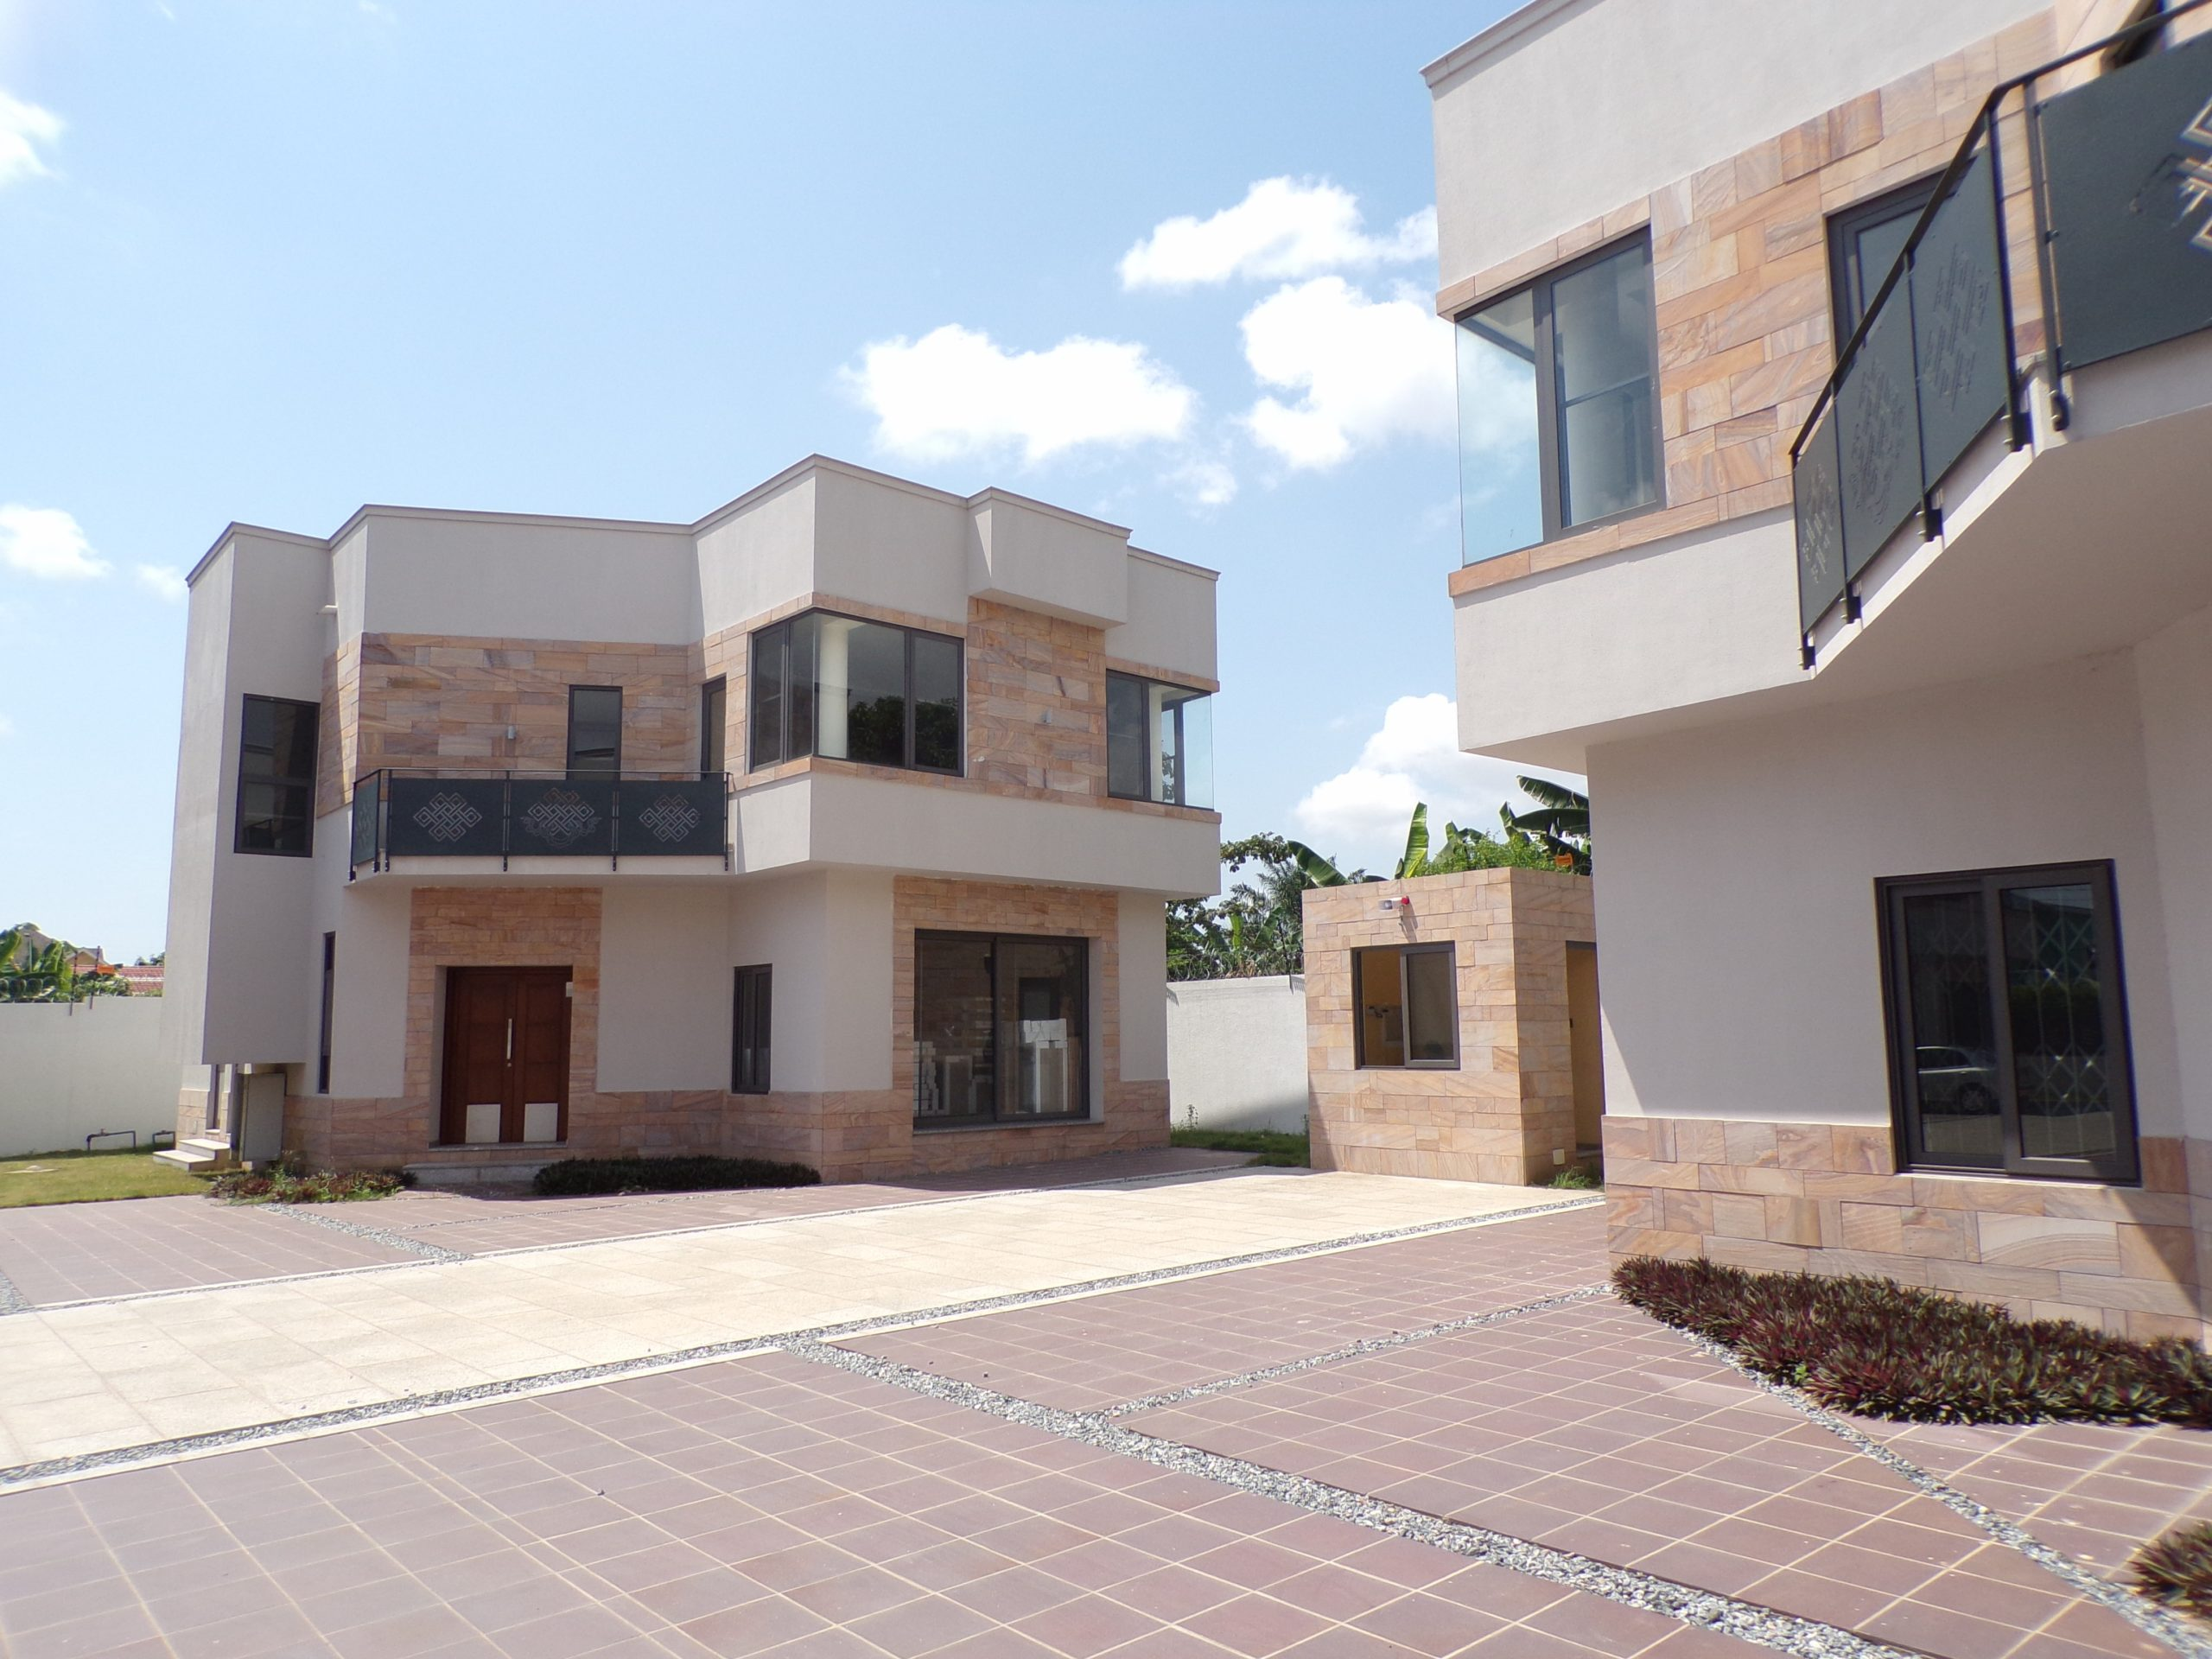 3 bedroom furnished townhouse for rent in East Legon